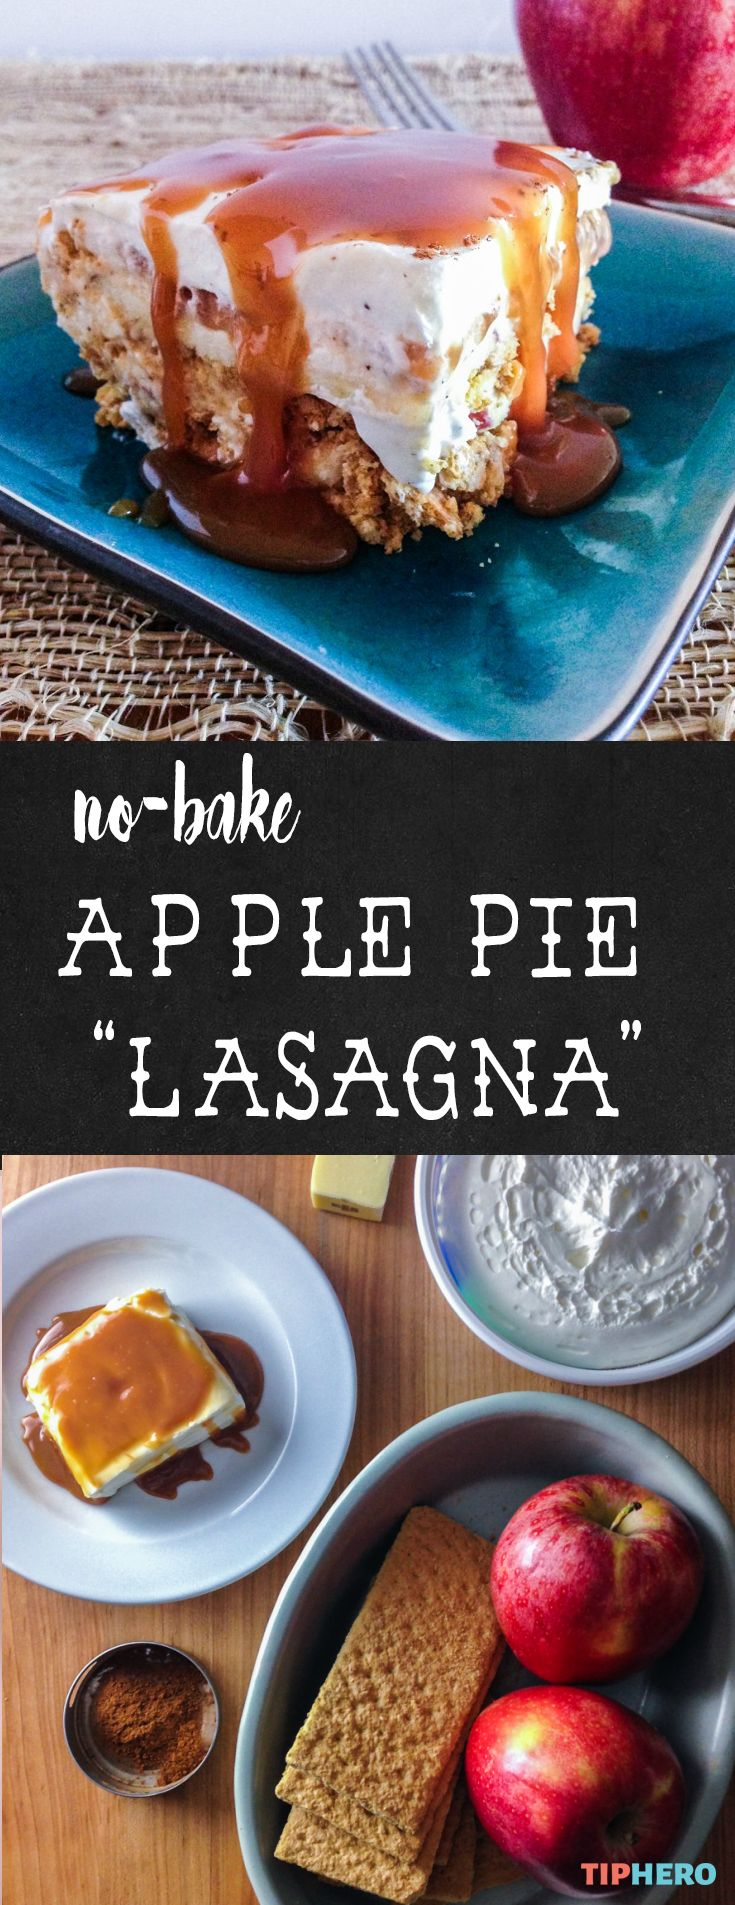 No- Bake Apple Pie? Yes, please! This dessert is decadent, sweet, and easy to make. Layered like a lasagna it with the creaminess of a cheesecake. And all it takes to make is cream cheese, caramel sauce, butter, graham crackers, apples, cool whip topping, and cinnamon. Yum! Click for the recipe and how to. #dessert #sweettreats #nobake #crowdpleasers #recipes